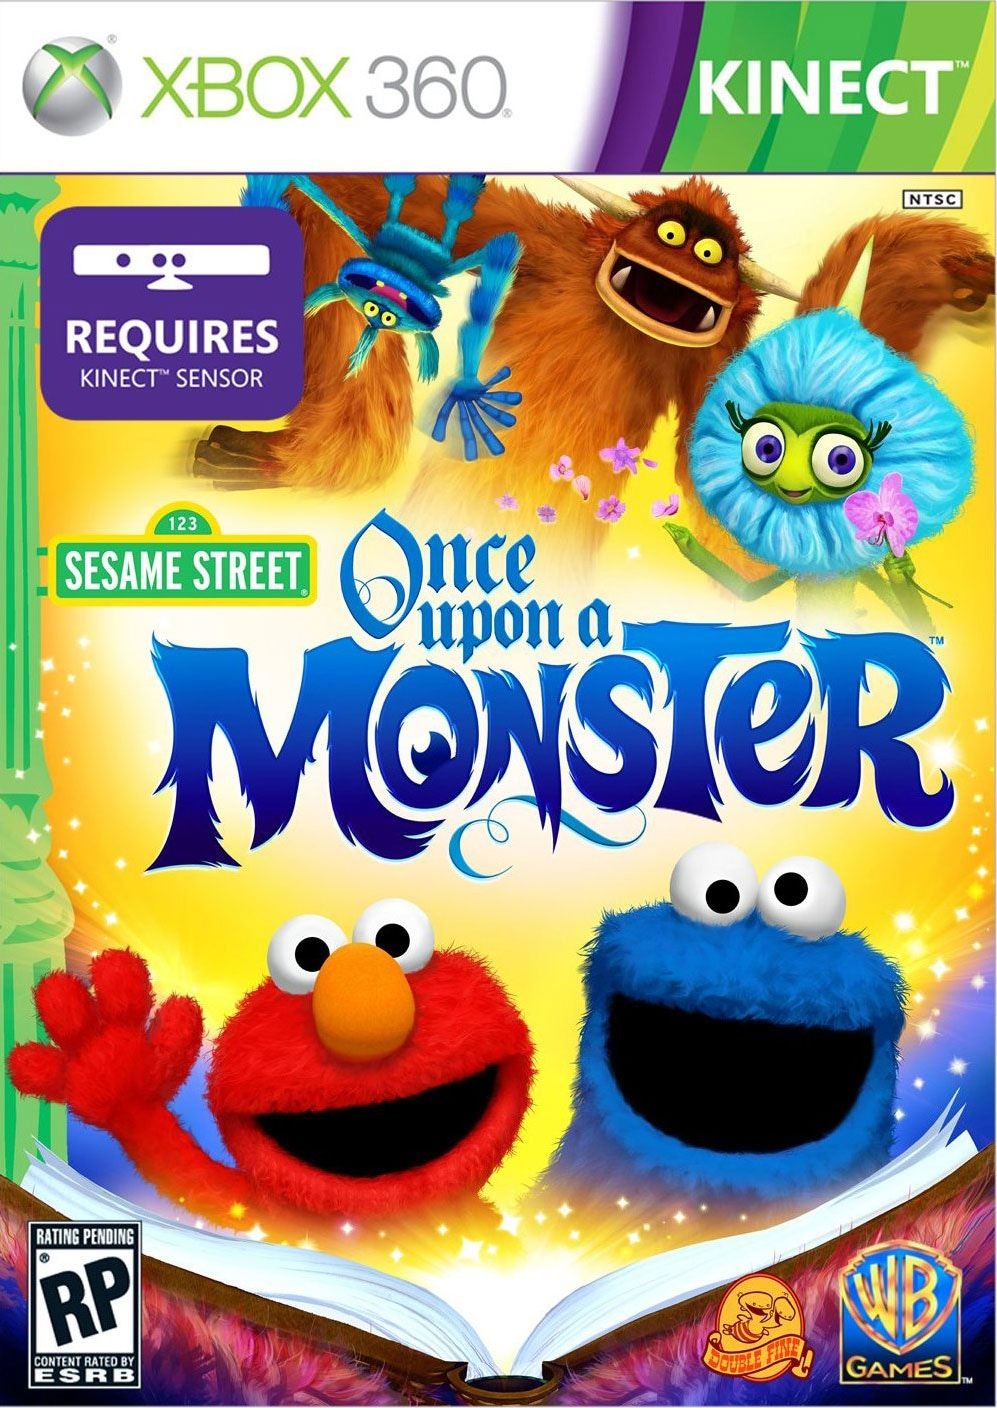 Xbox 360 - Sesame Street: Once Upon A Monster - By Warner Bros